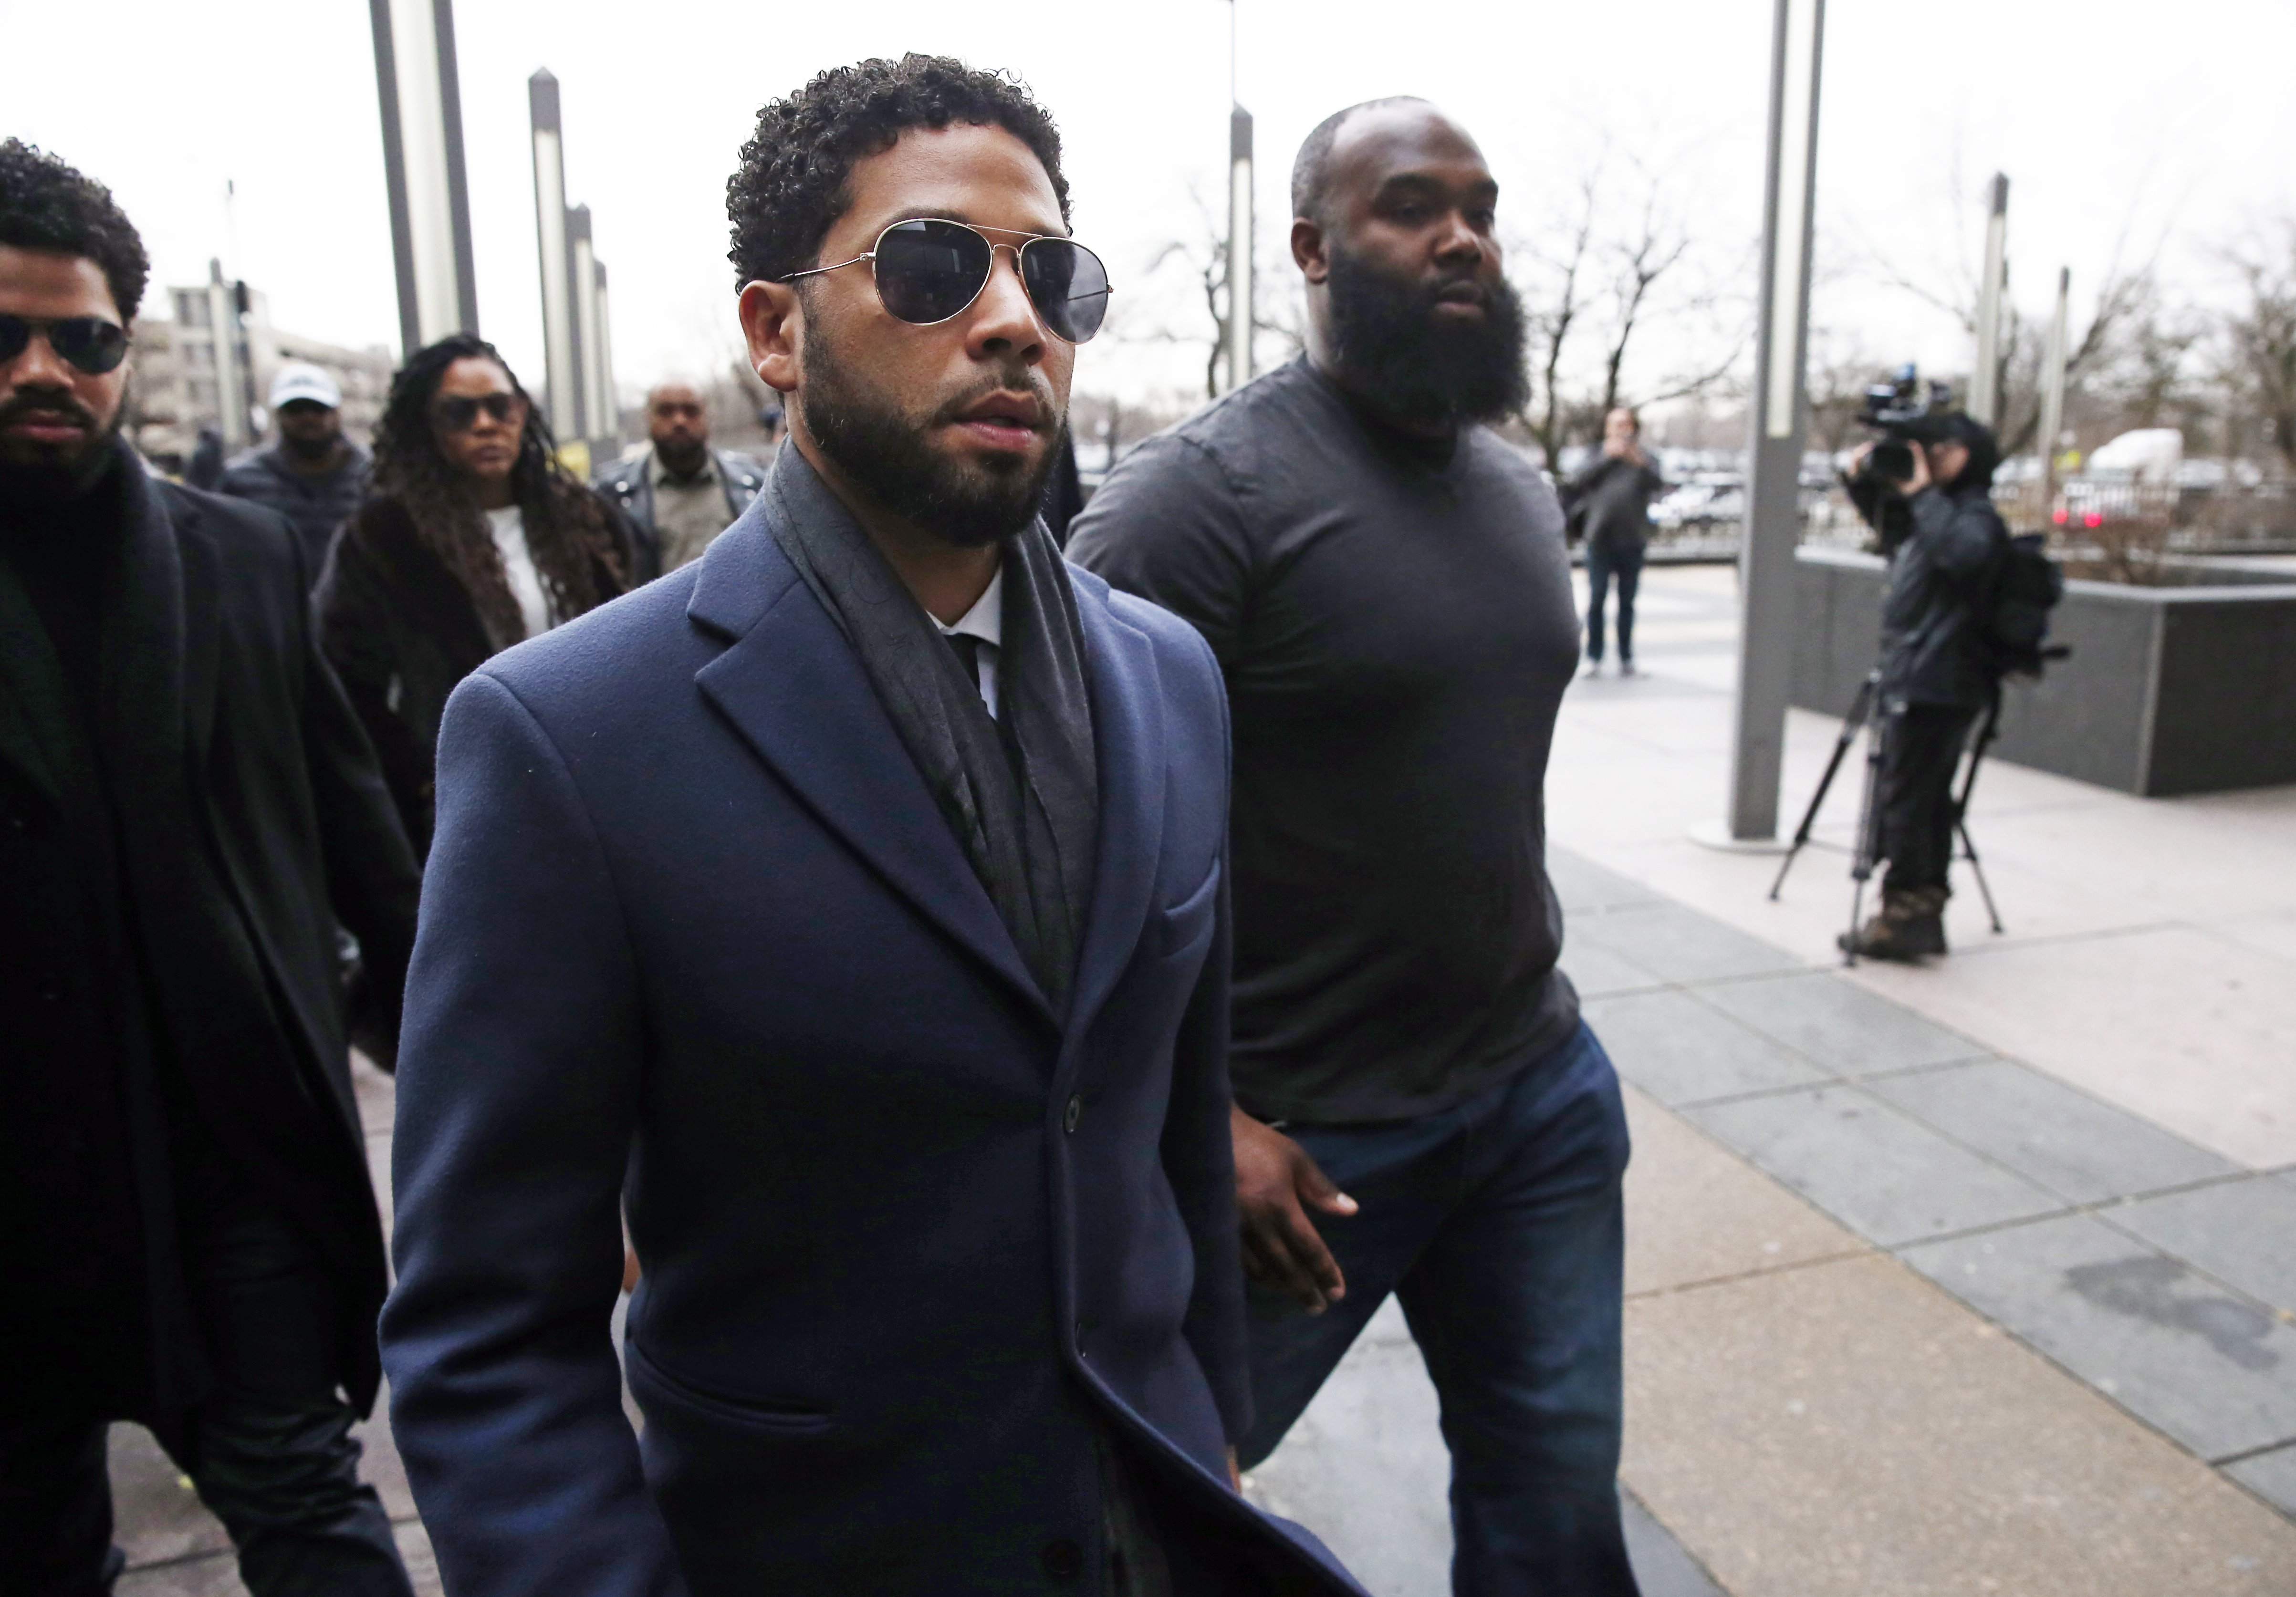 Jussie Smollett arrives at a courthouse in Chicago, Illinois on March 14 | Photo: Getty Images